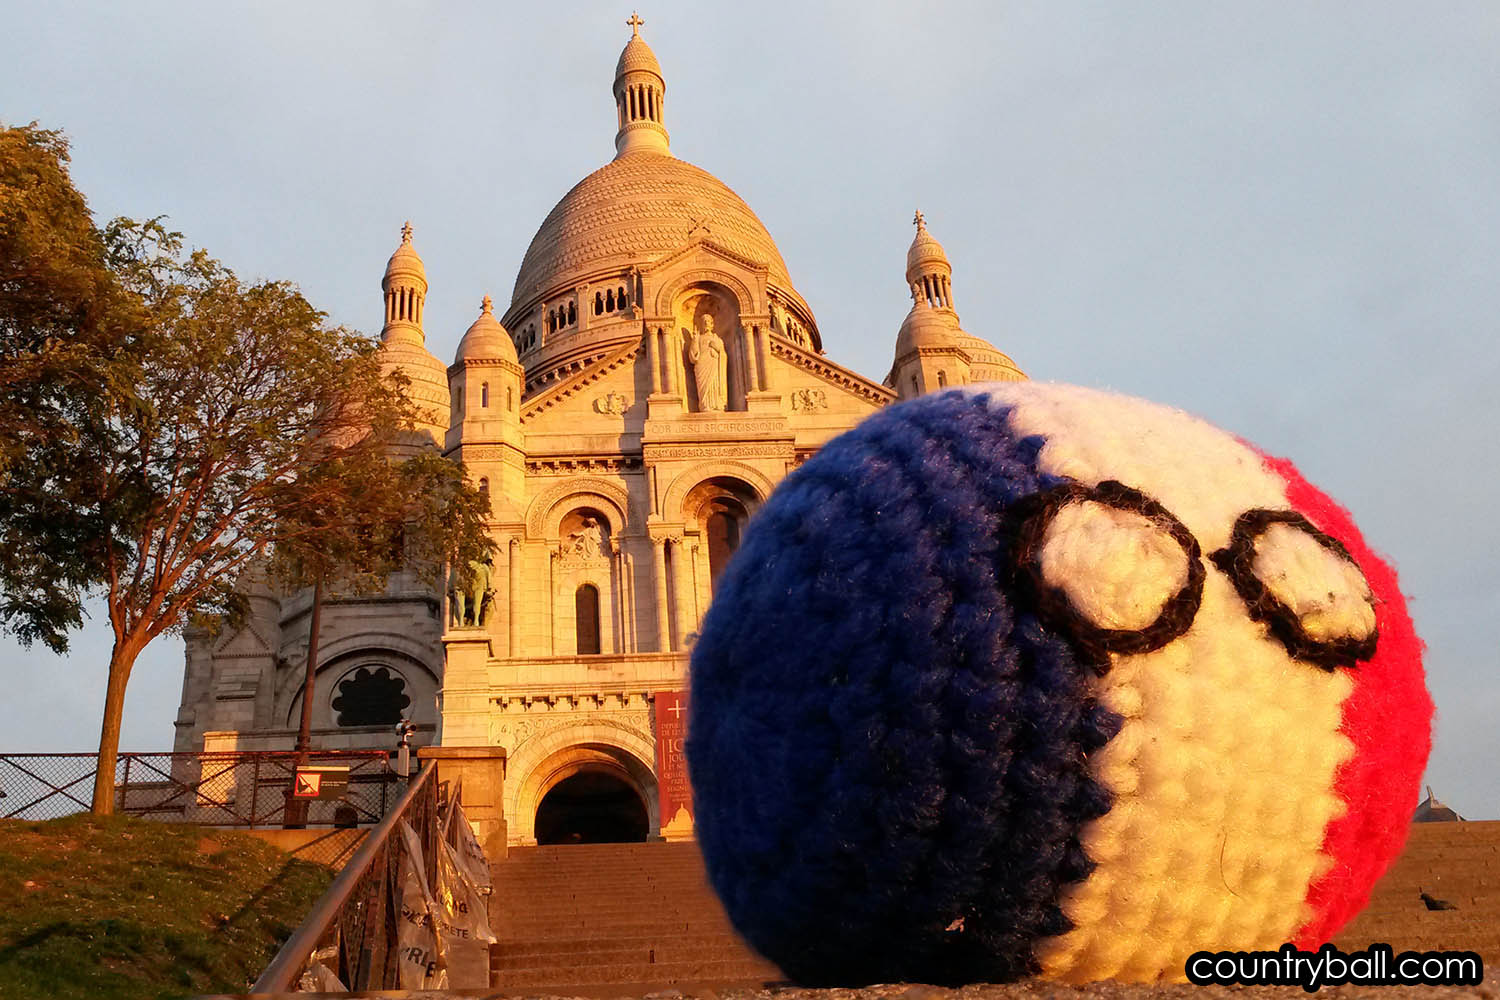 Franceball in front of Sacre Coeur at Dawn